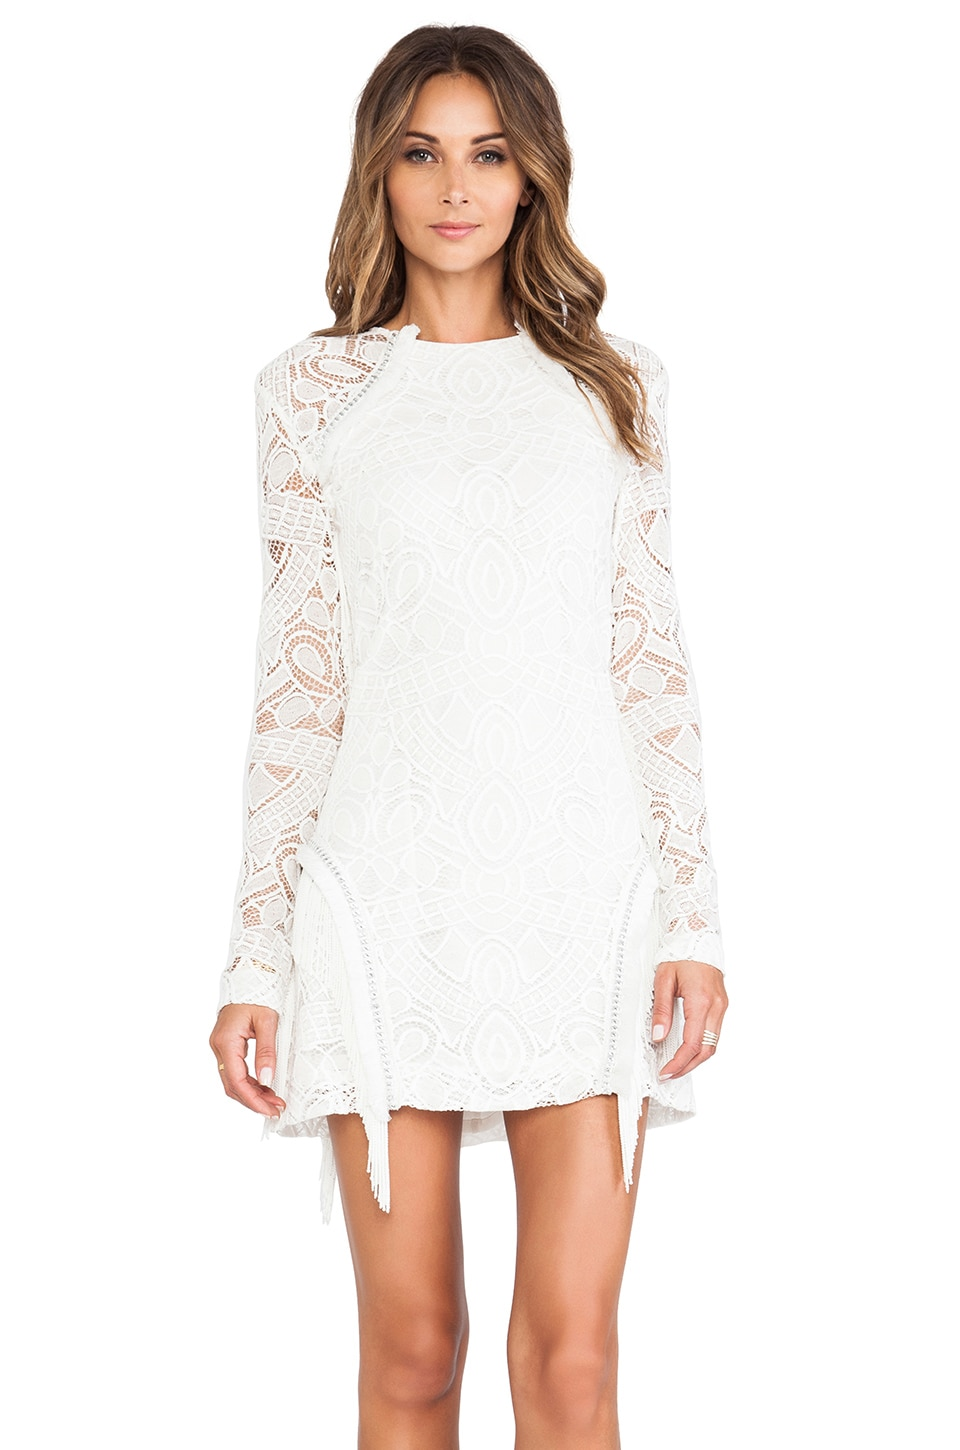 Alexis Darya Fringe Detail Dress in White Lace